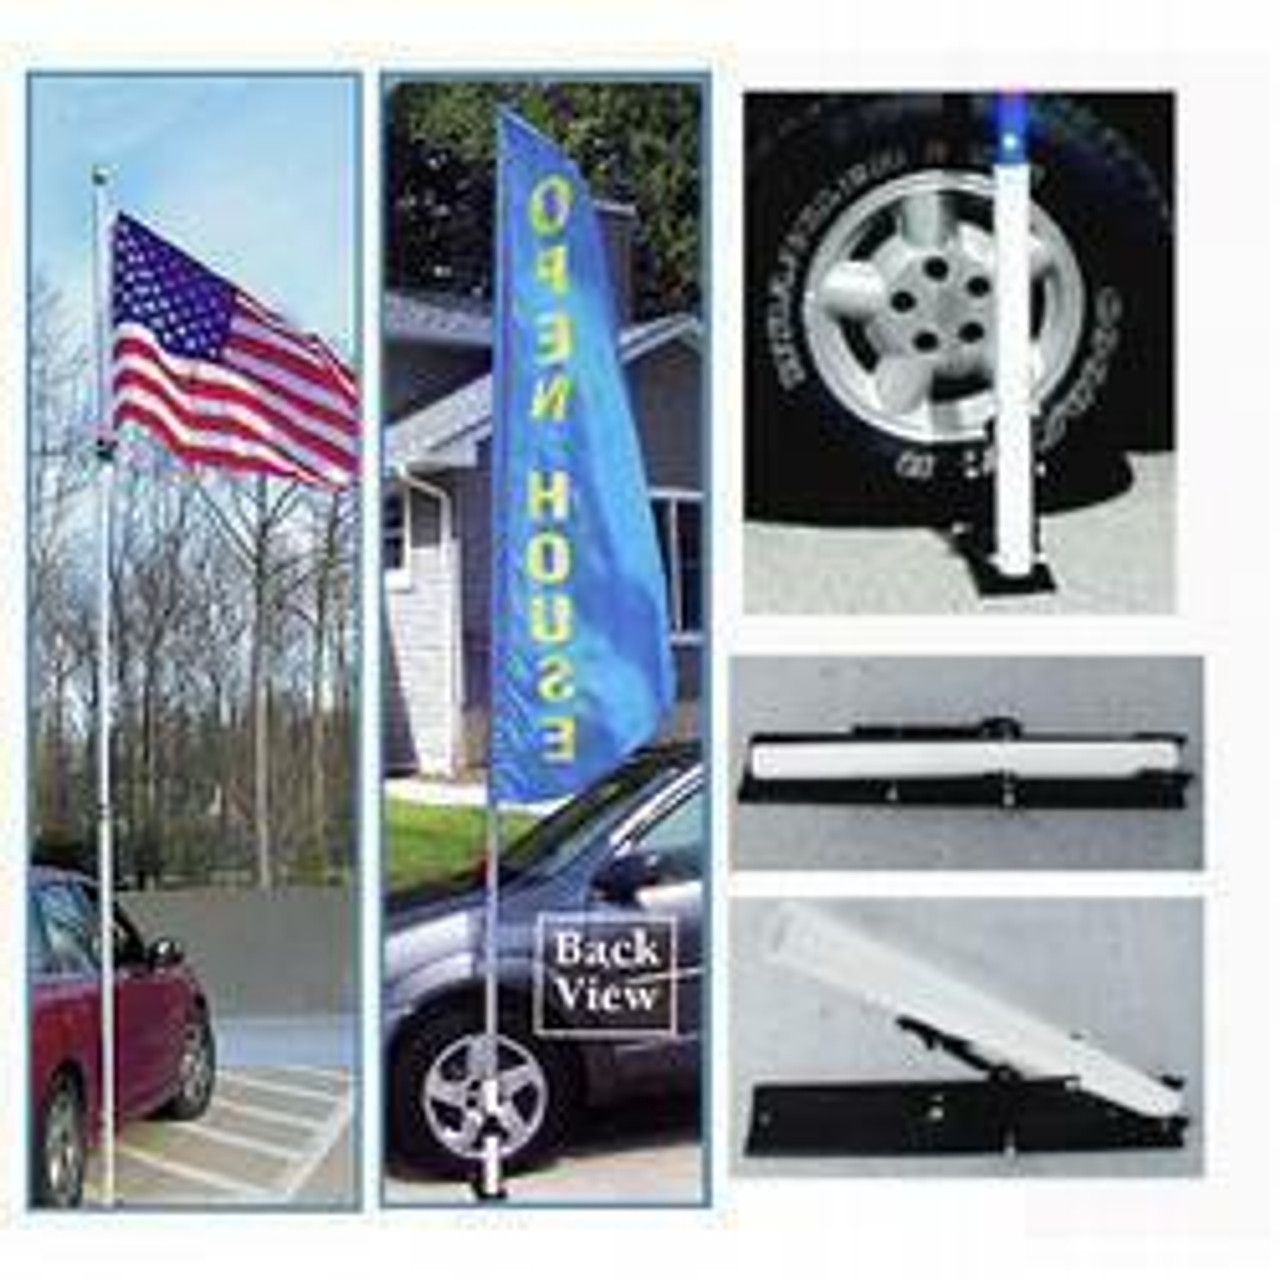 """The The 16' Portable Telescoping Flagpole w/ Stand is made of strong, lightweight fiberglass and can be adjusted to any length up to 16 feet. The portable flagpole has a diameter of 1.5"""" and comes equipped with a ball ornament, locking banner clips for a permanent display, and a ground sleeve."""